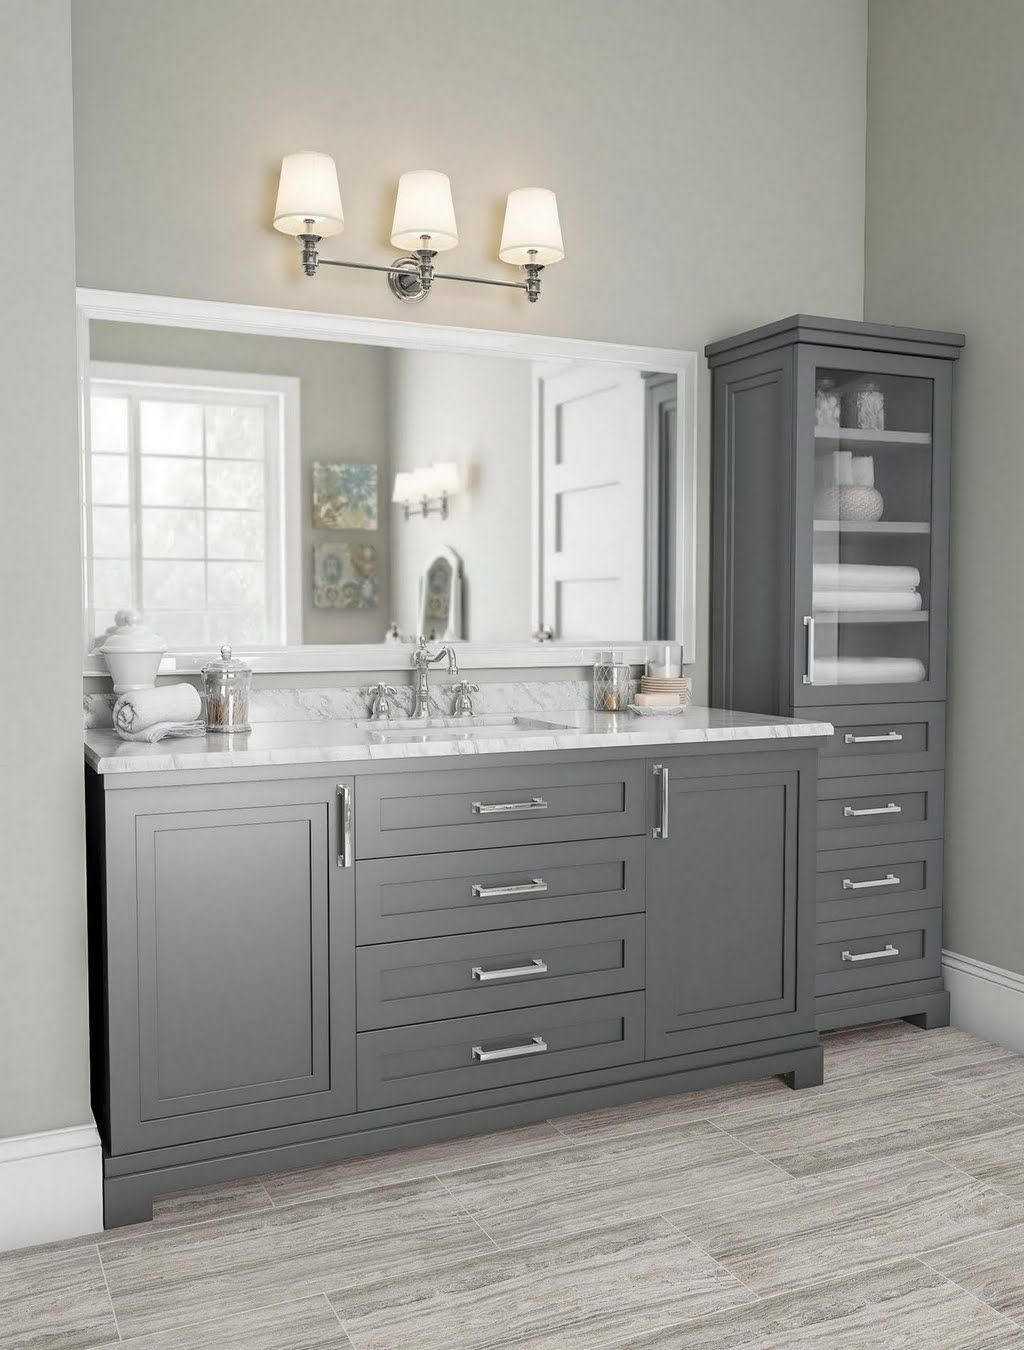 Gray Bathroom Ideas Check Out These Incredible Collection Of Gray Master Bathroom Design Id Bathroom Vanity Decor Farmhouse Bathroom Vanity Bathrooms Remodel